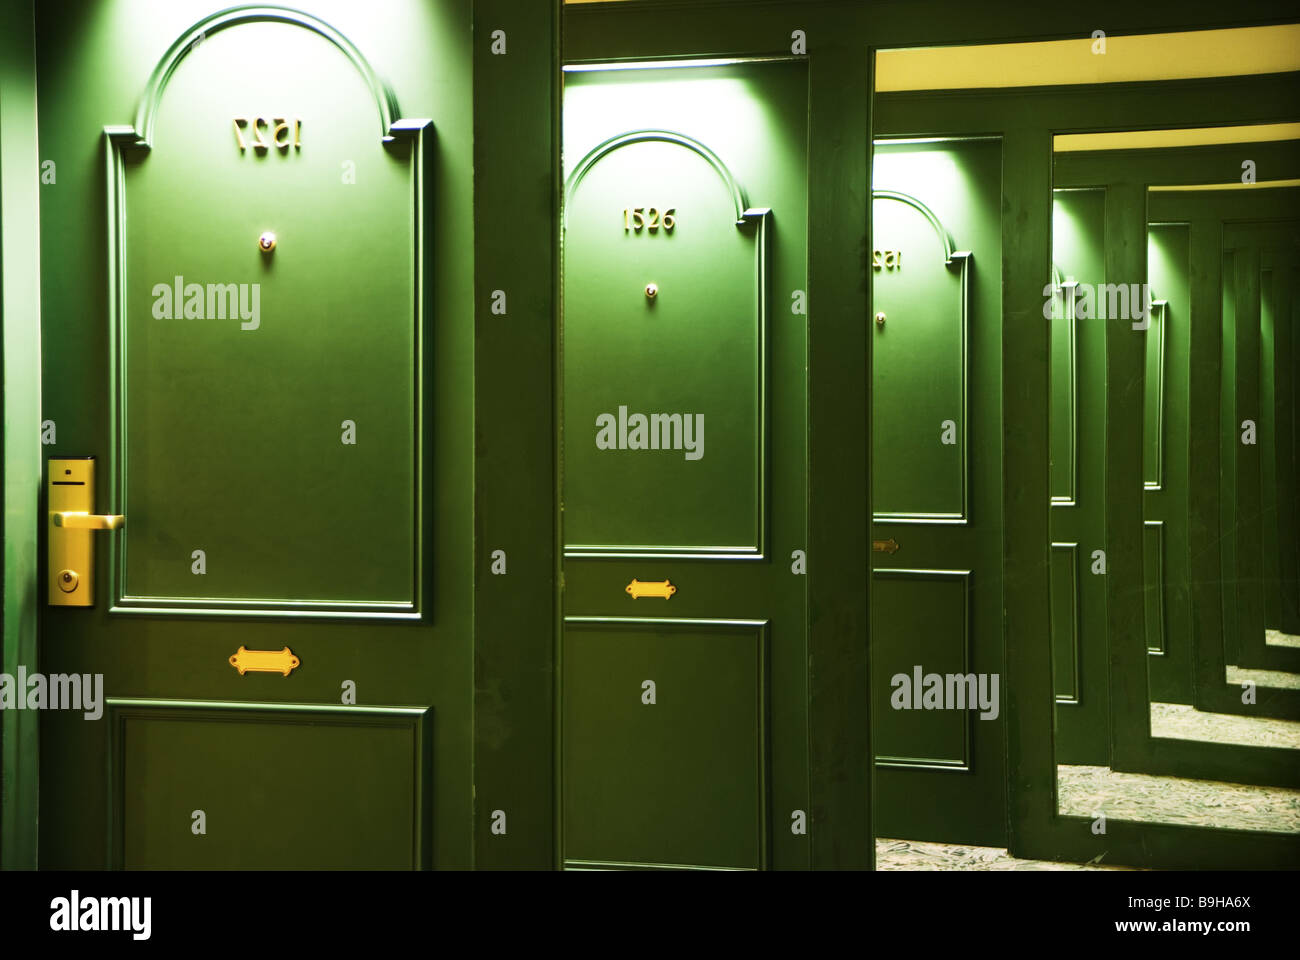 Hotel hall mirrors room-doors green reflections many times hotel-halls doors wood-doors entrances room-numbers wall-mirrors & Hotel hall mirrors room-doors green reflections many times Stock ...